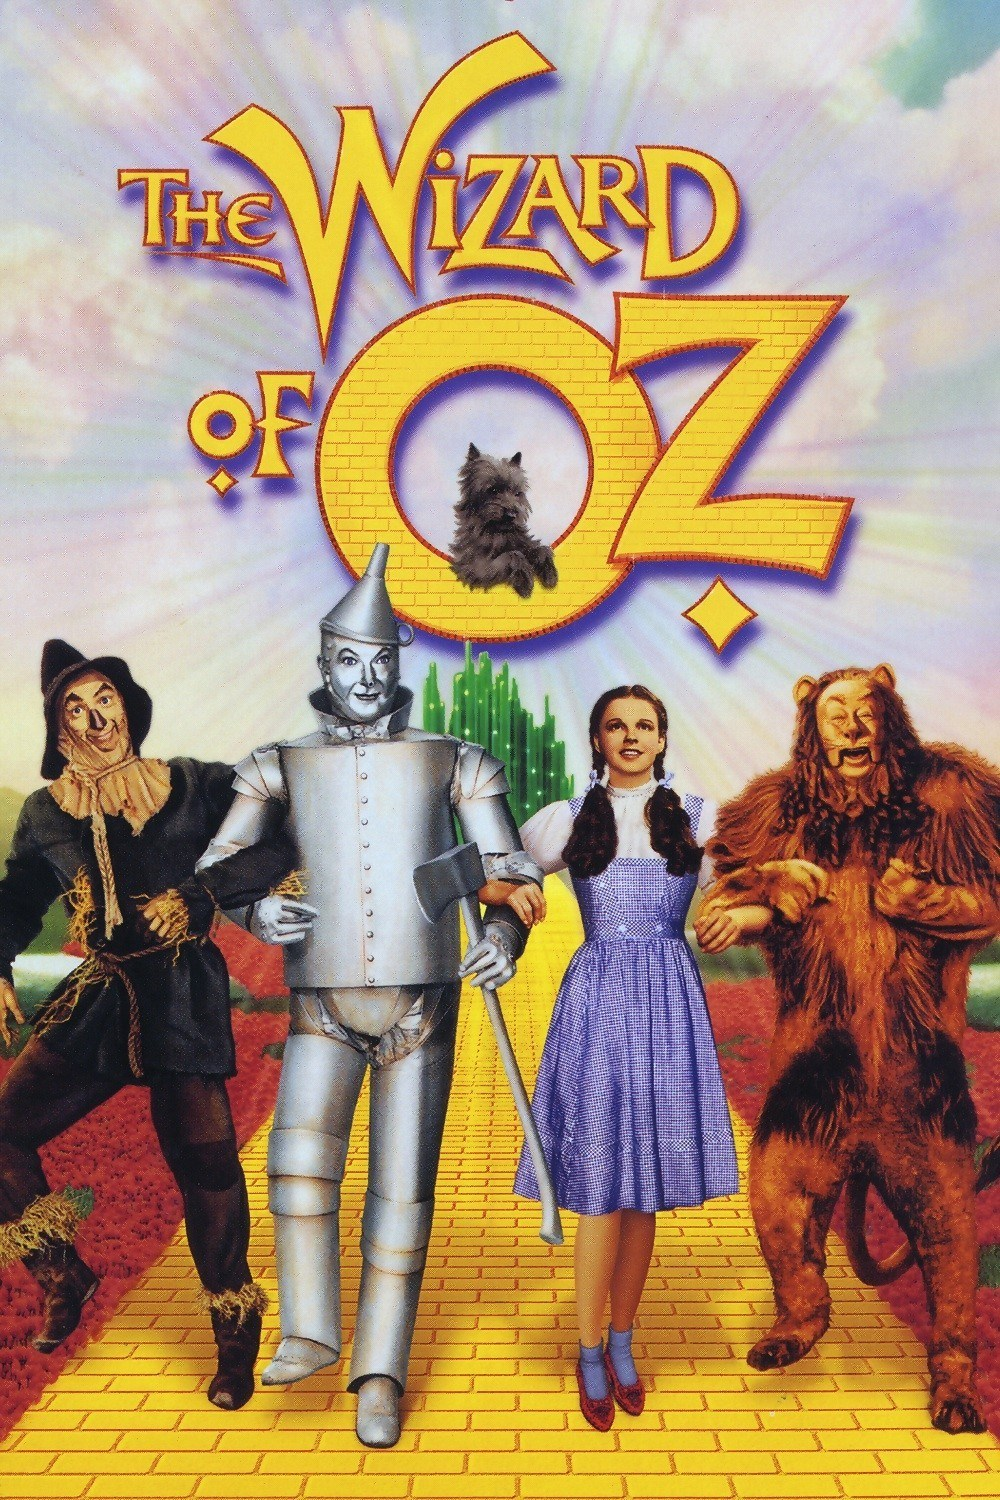 https://i.jeded.com/i/the-wizard-of-oz.12679.jpg